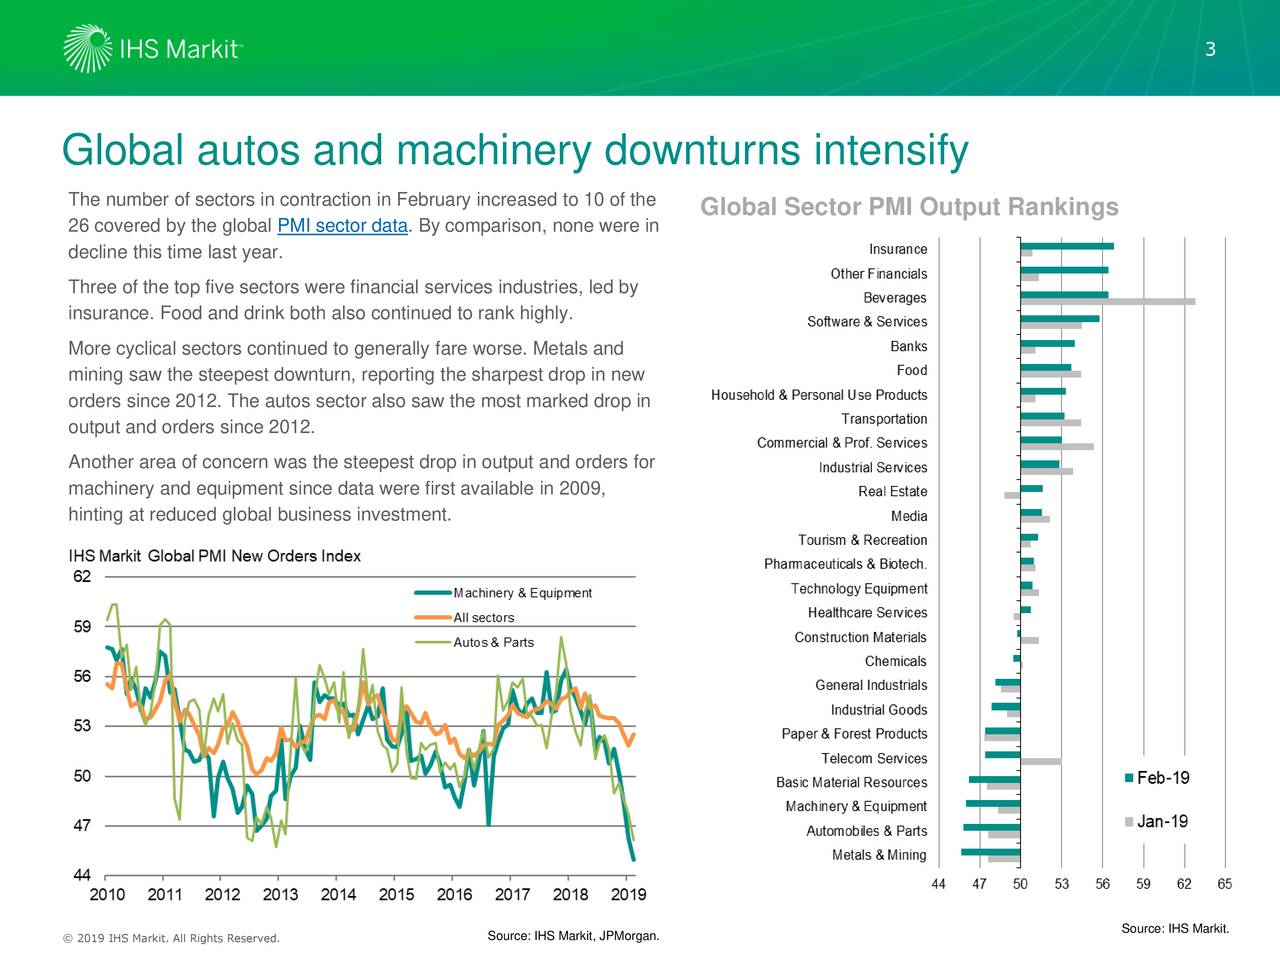 Global autos and machinery downturns intensify The number of sectors in contraction in February increased to 10 of the Global Sector PMI Output Rankings 26 covered by the global PMI sector data. By comparison, none were in decline this time last year. Three of the top five sectors were financial services industries, led by insurance. Food and drink both also continued to rank highly. More cyclical sectors continued to generally fare worse. Metals and mining saw the steepest downturn, reporting the sharpest drop in new orders since 2012. The autos sector also saw the most marked drop in output and orders since 2012. Another area of concern was the steepest drop in output and orders for machinery and equipment since data were first available in 2009, hinting at reduced global business investment. Source: IHS Markit. © 2016 IHS Markit. All Rights Reserved. Source: IHS Markit, JPMorgan.